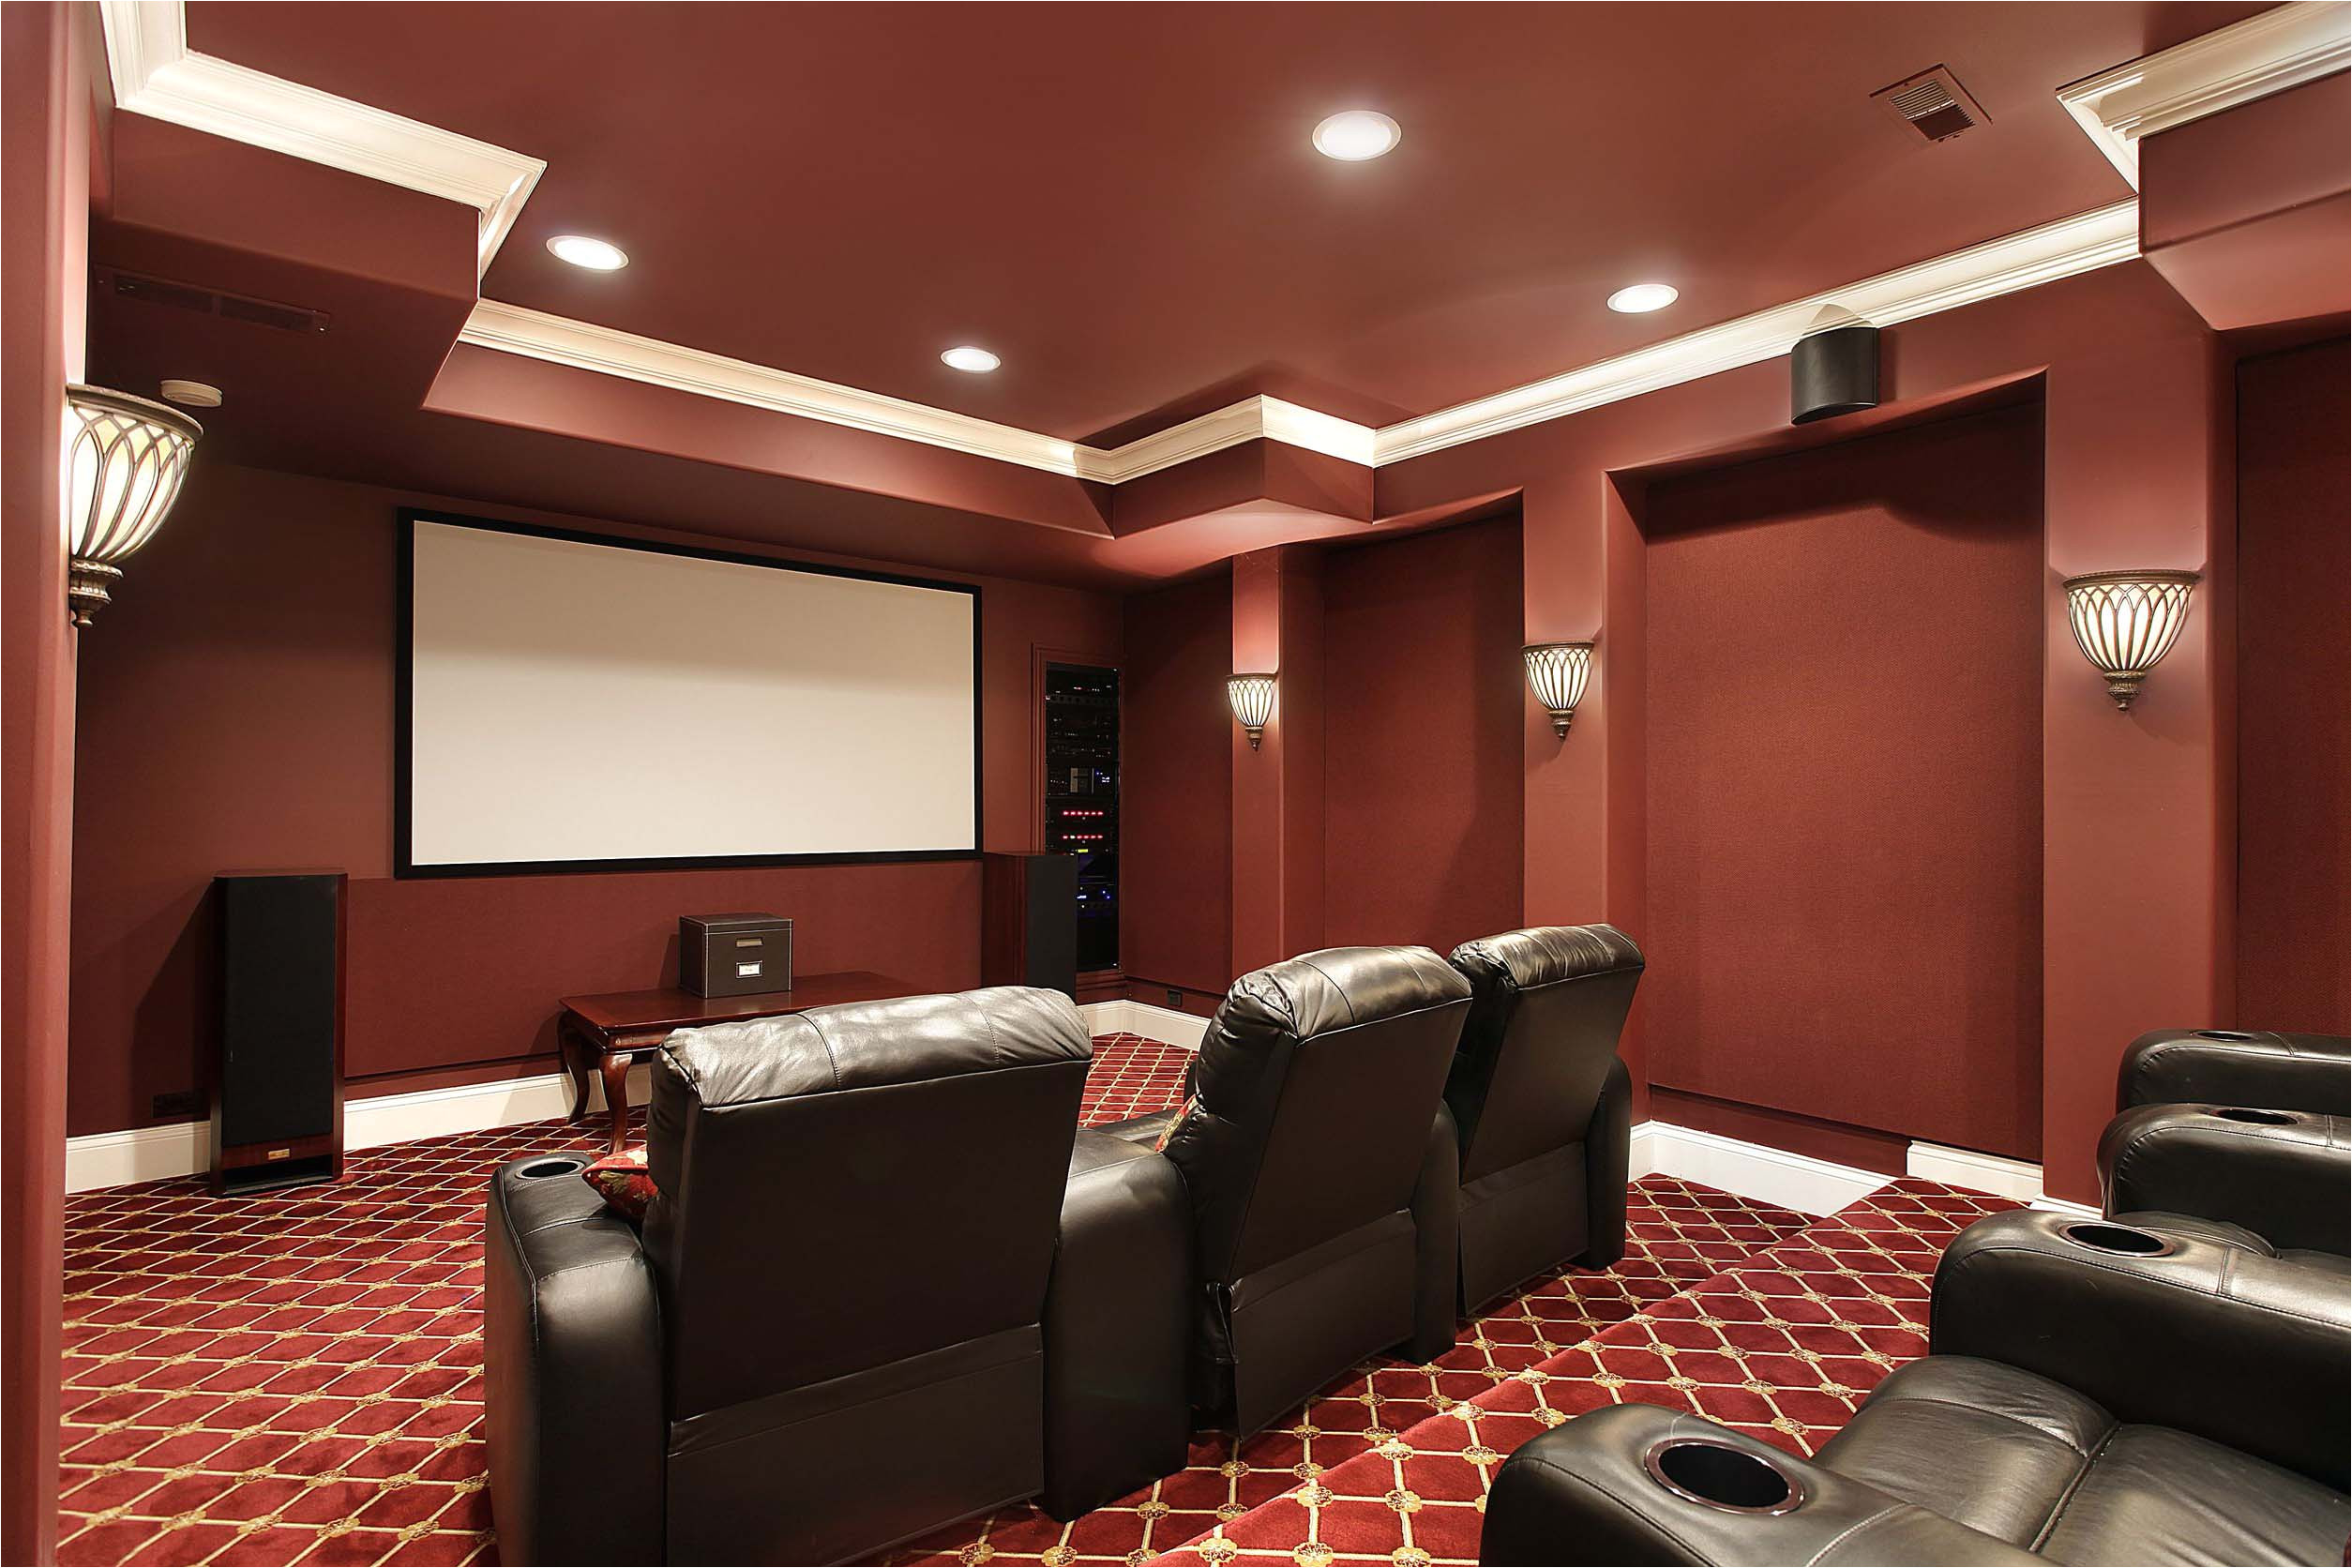 Home theater Plans Designs Interior Design Services Mcclintock Walker Interiors